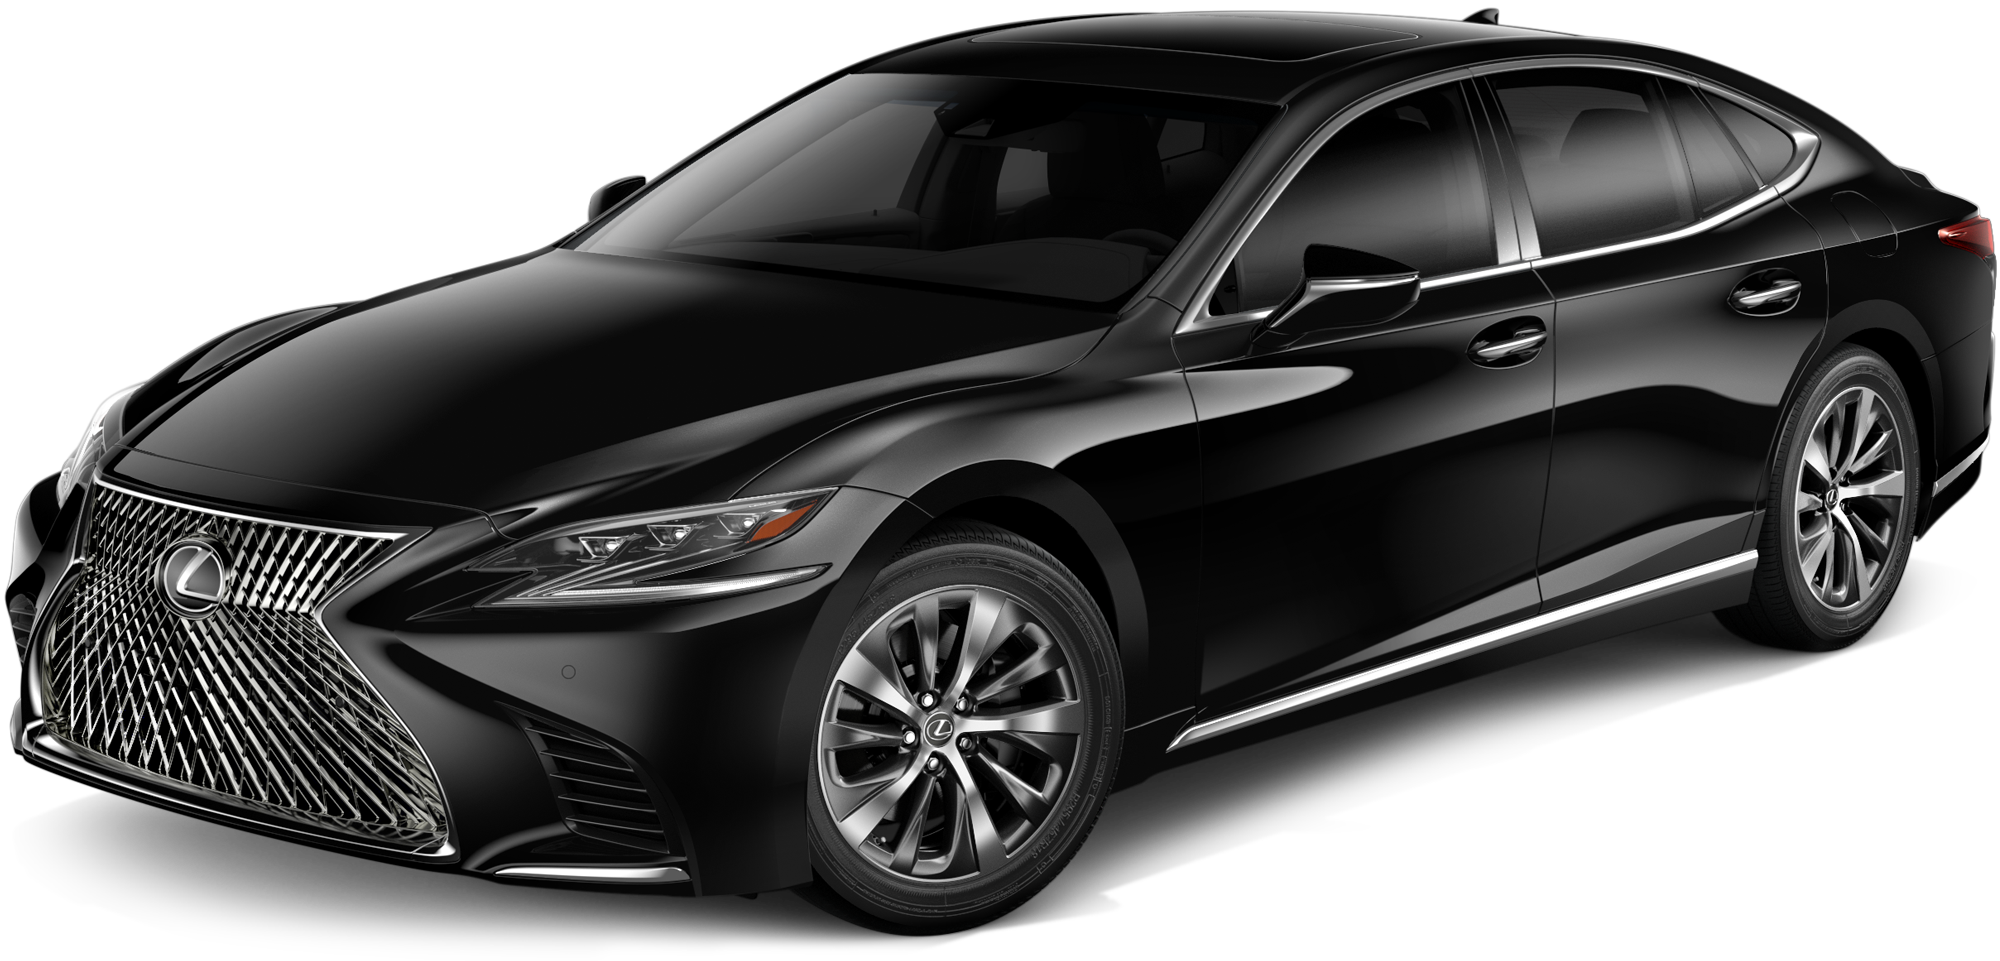 2020 lexus ls 500 incentives  specials  u0026 offers in roswell ga